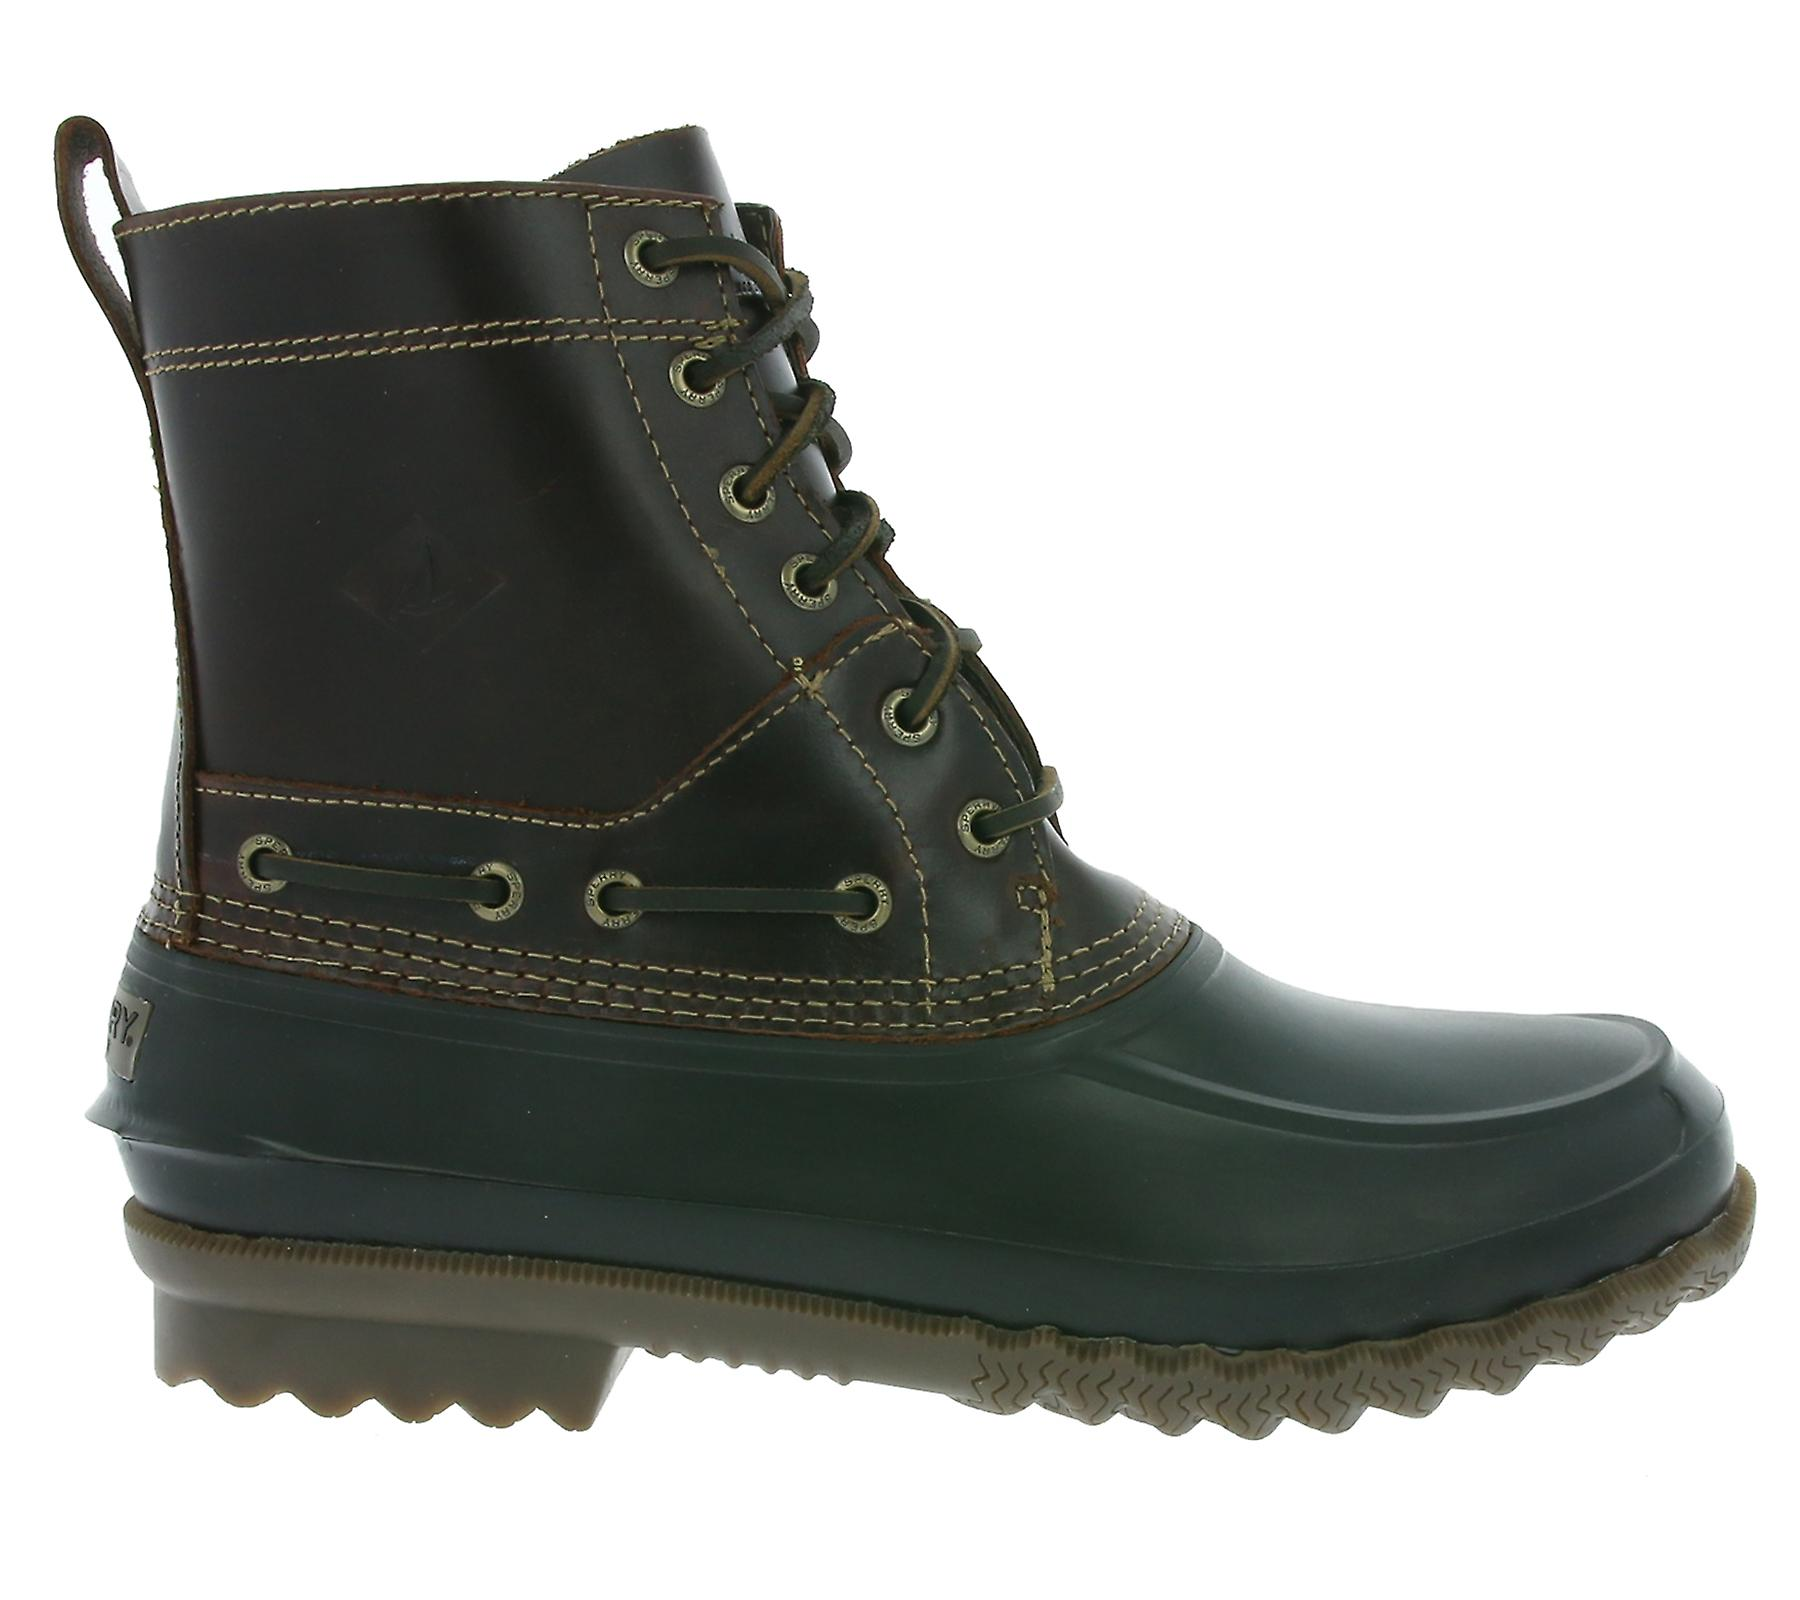 sperry decoy boots schuhe herren stiefel schwarz sts13458 fruugo. Black Bedroom Furniture Sets. Home Design Ideas